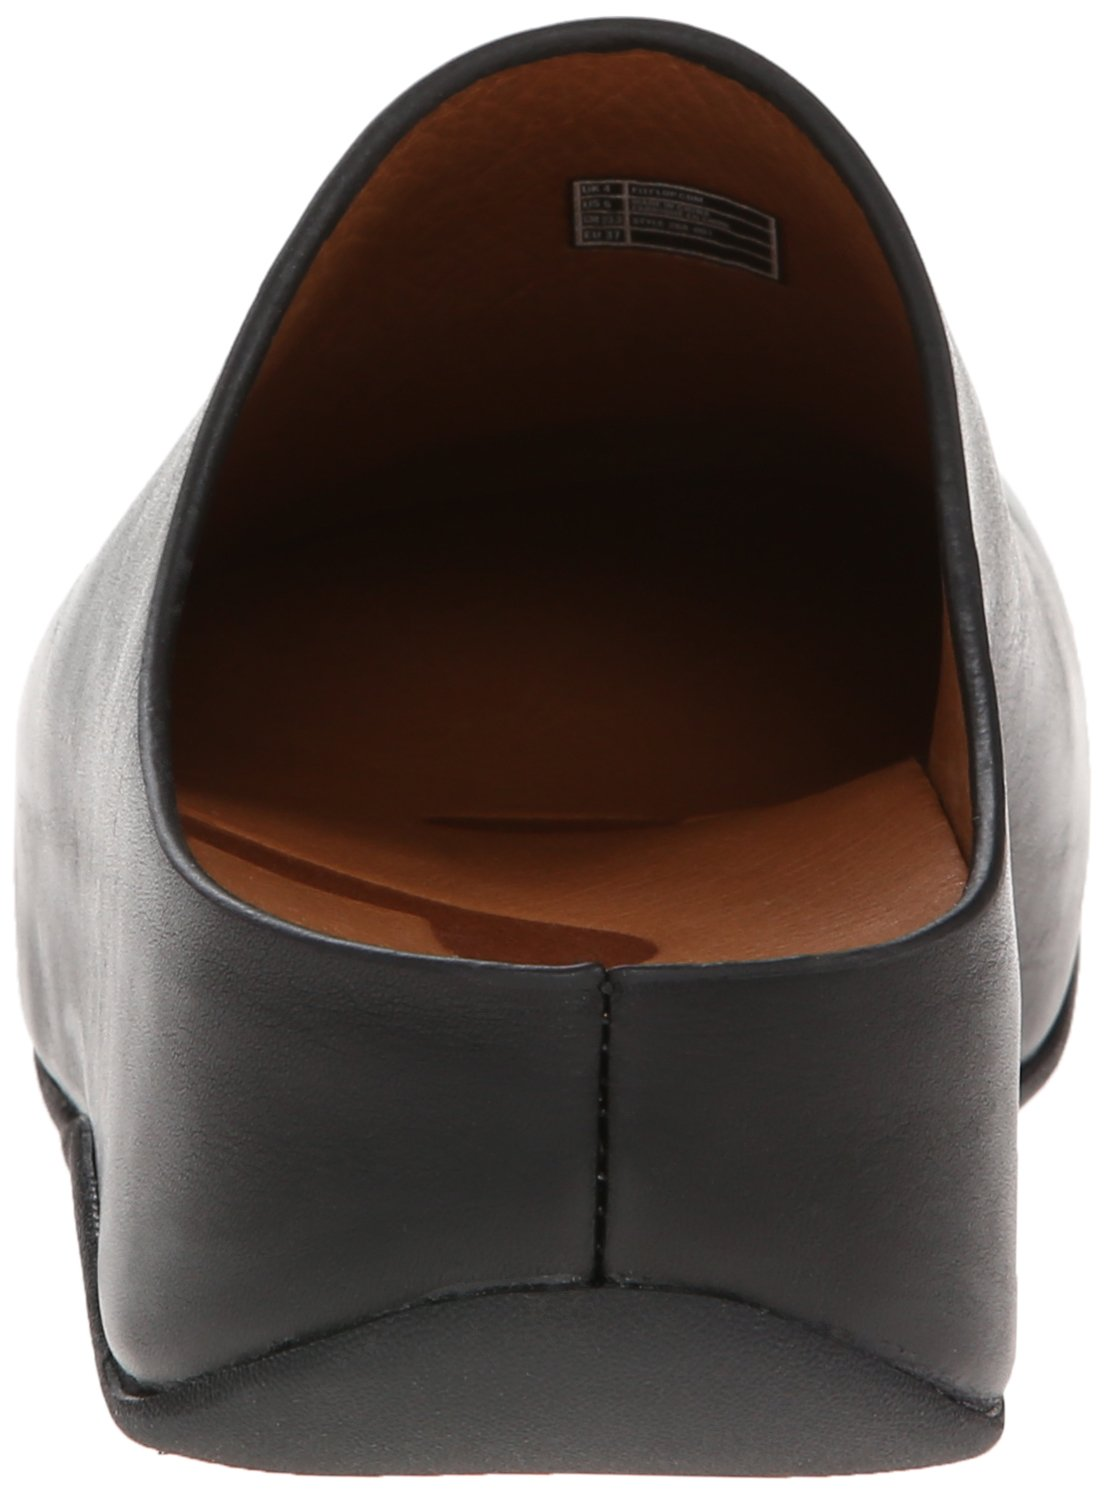 FitFlop Women's Shuv Leather Clog,Black,5 M US by FitFlop (Image #2)